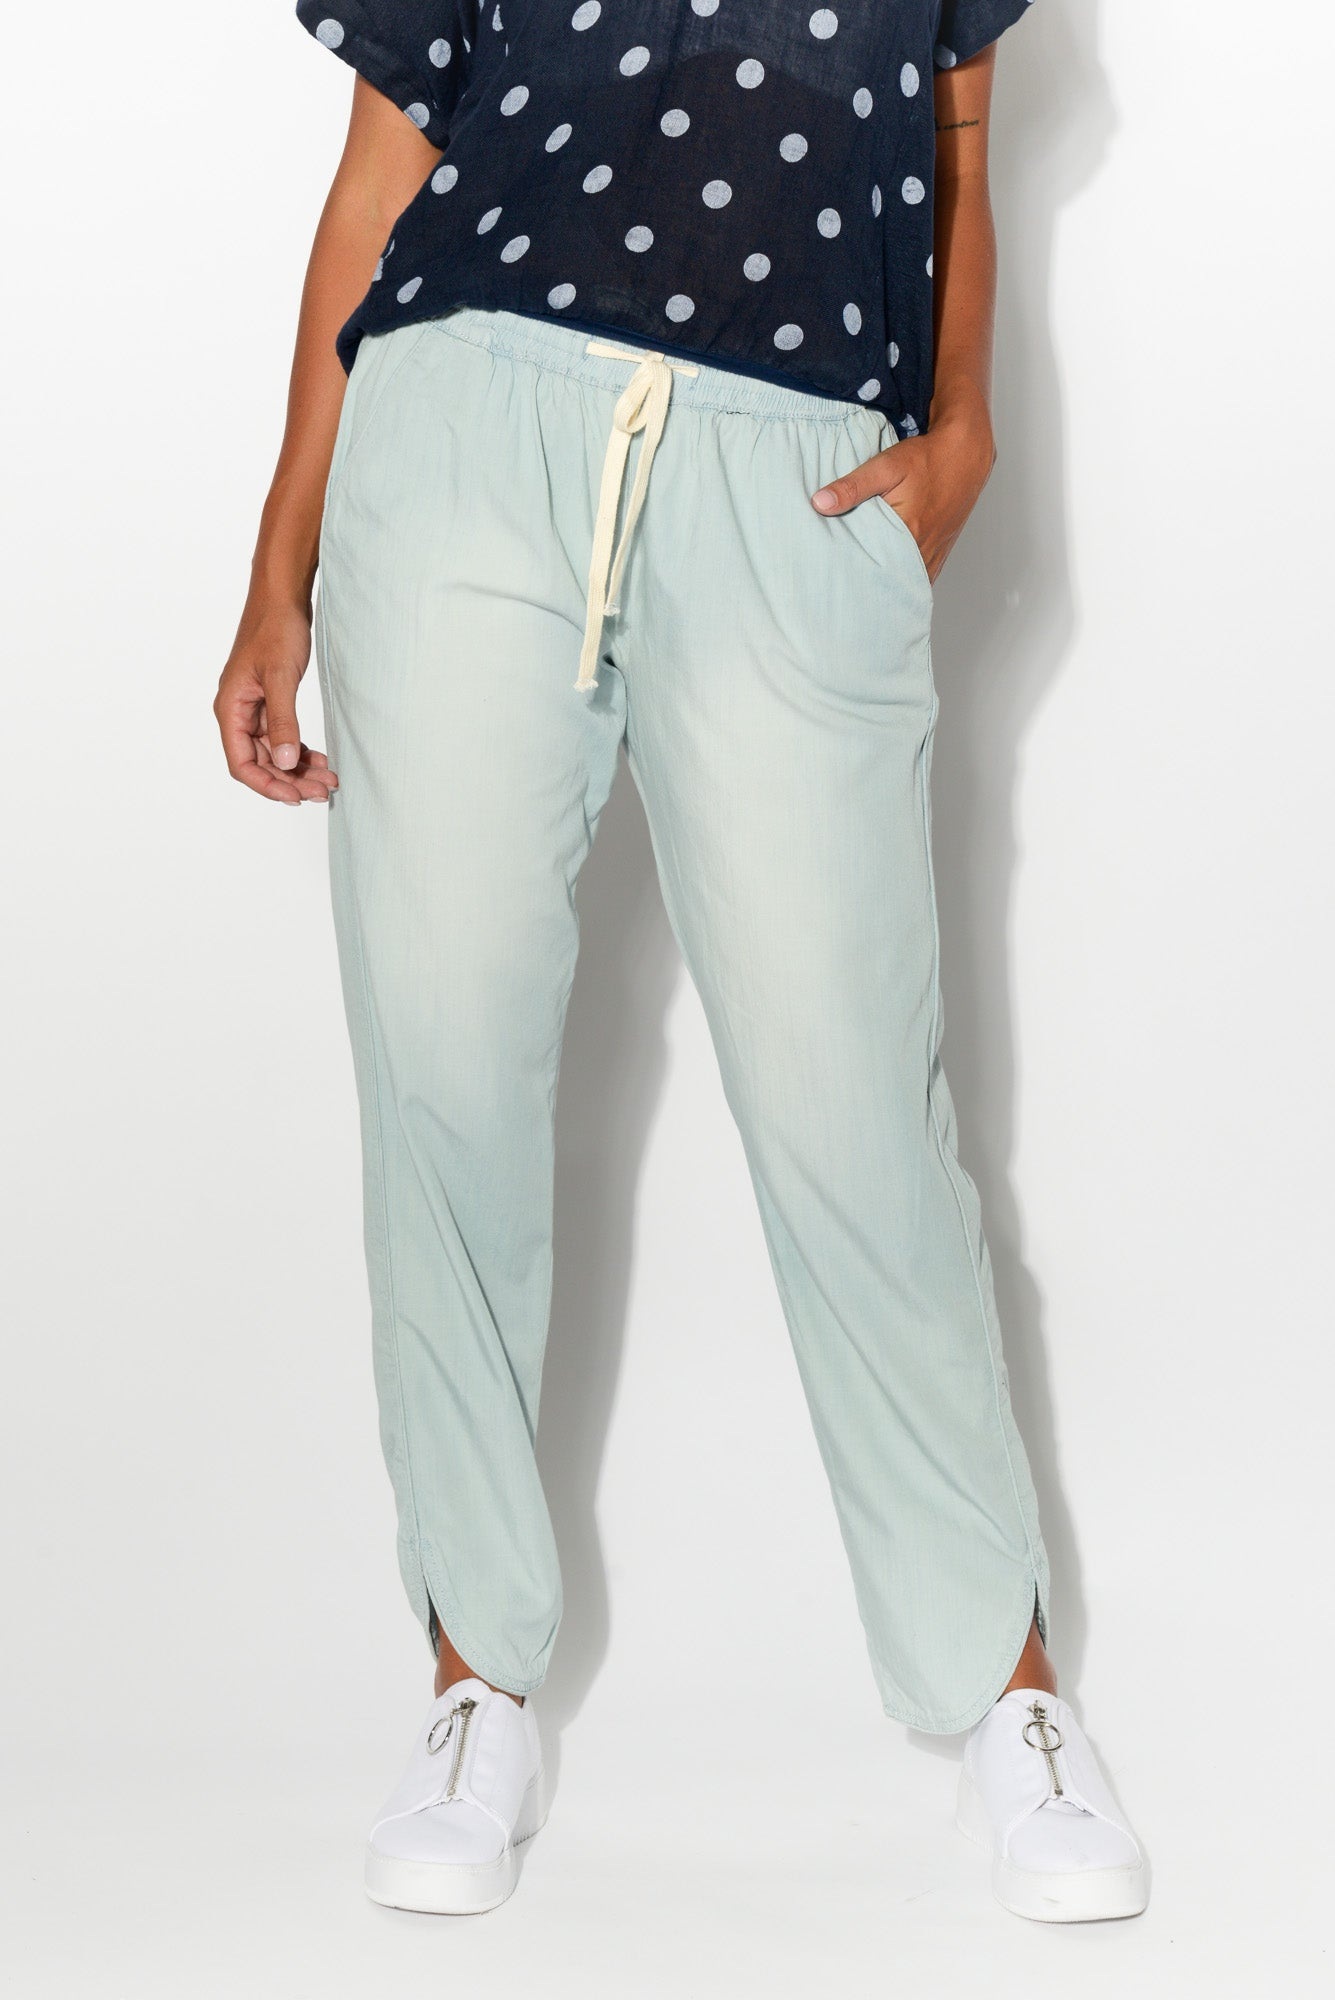 Chambray Curved Hem Pant - Blue Bungalow